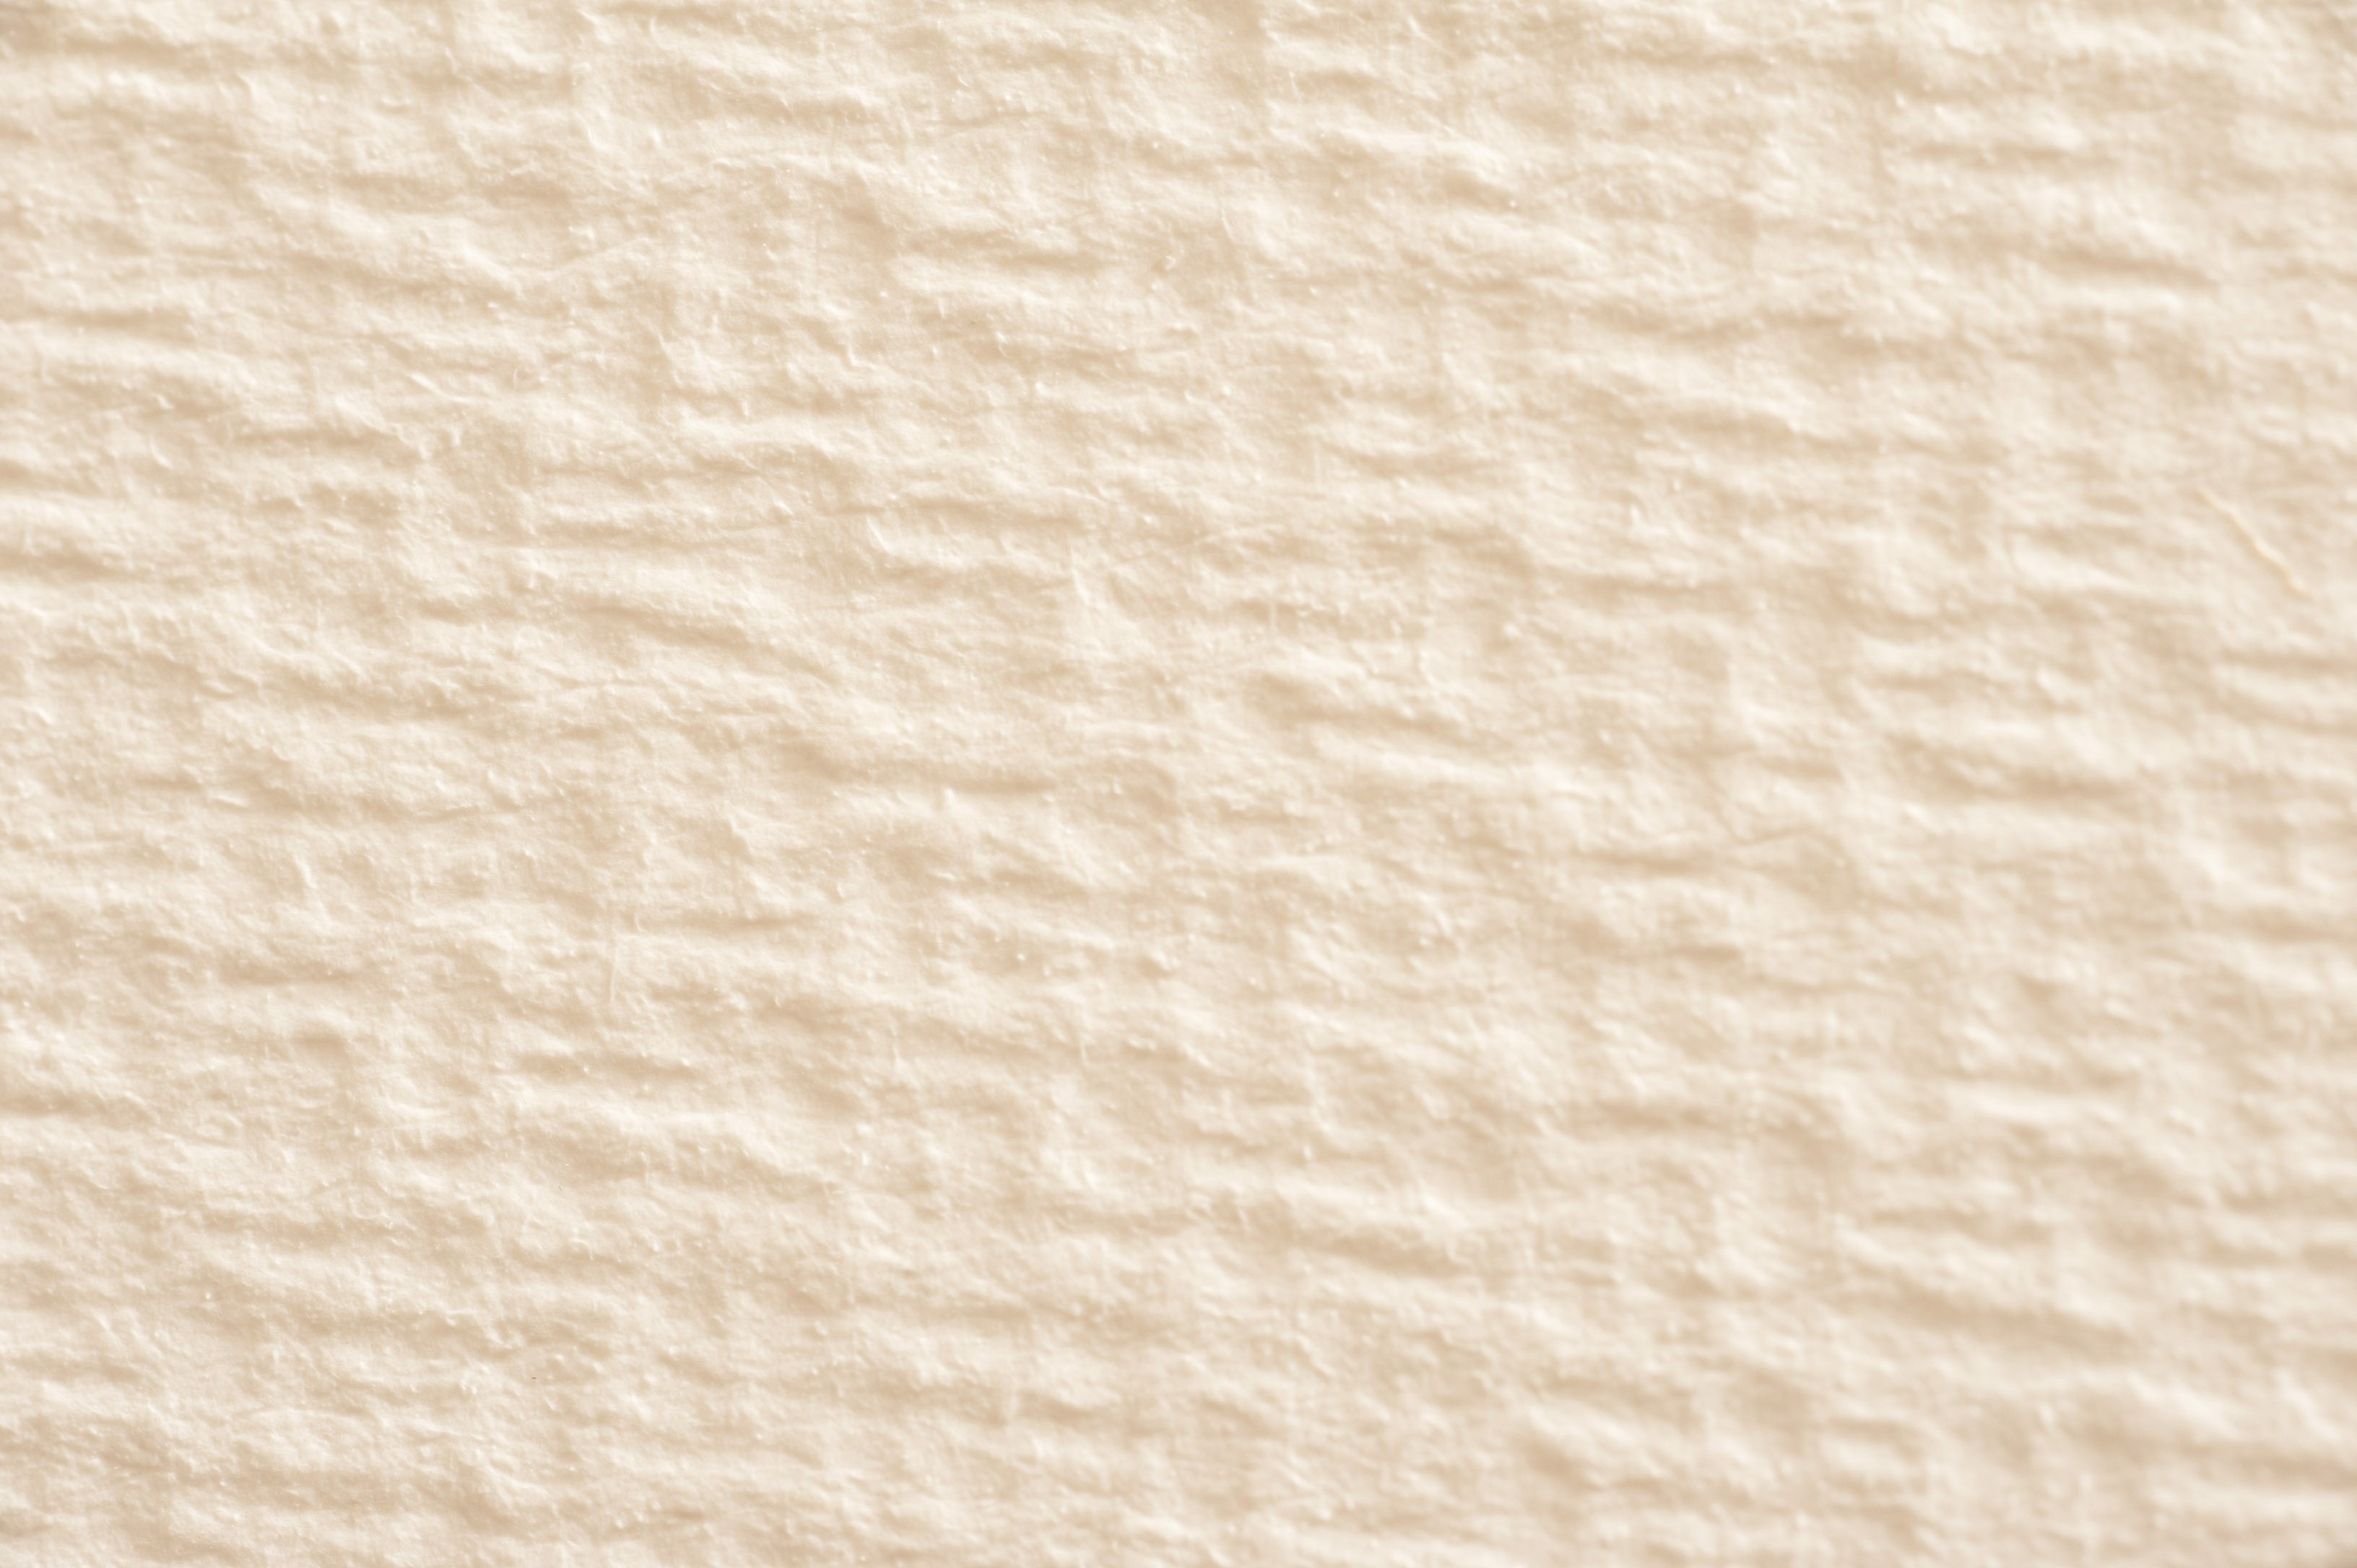 rough paper surface texture in a cream colour